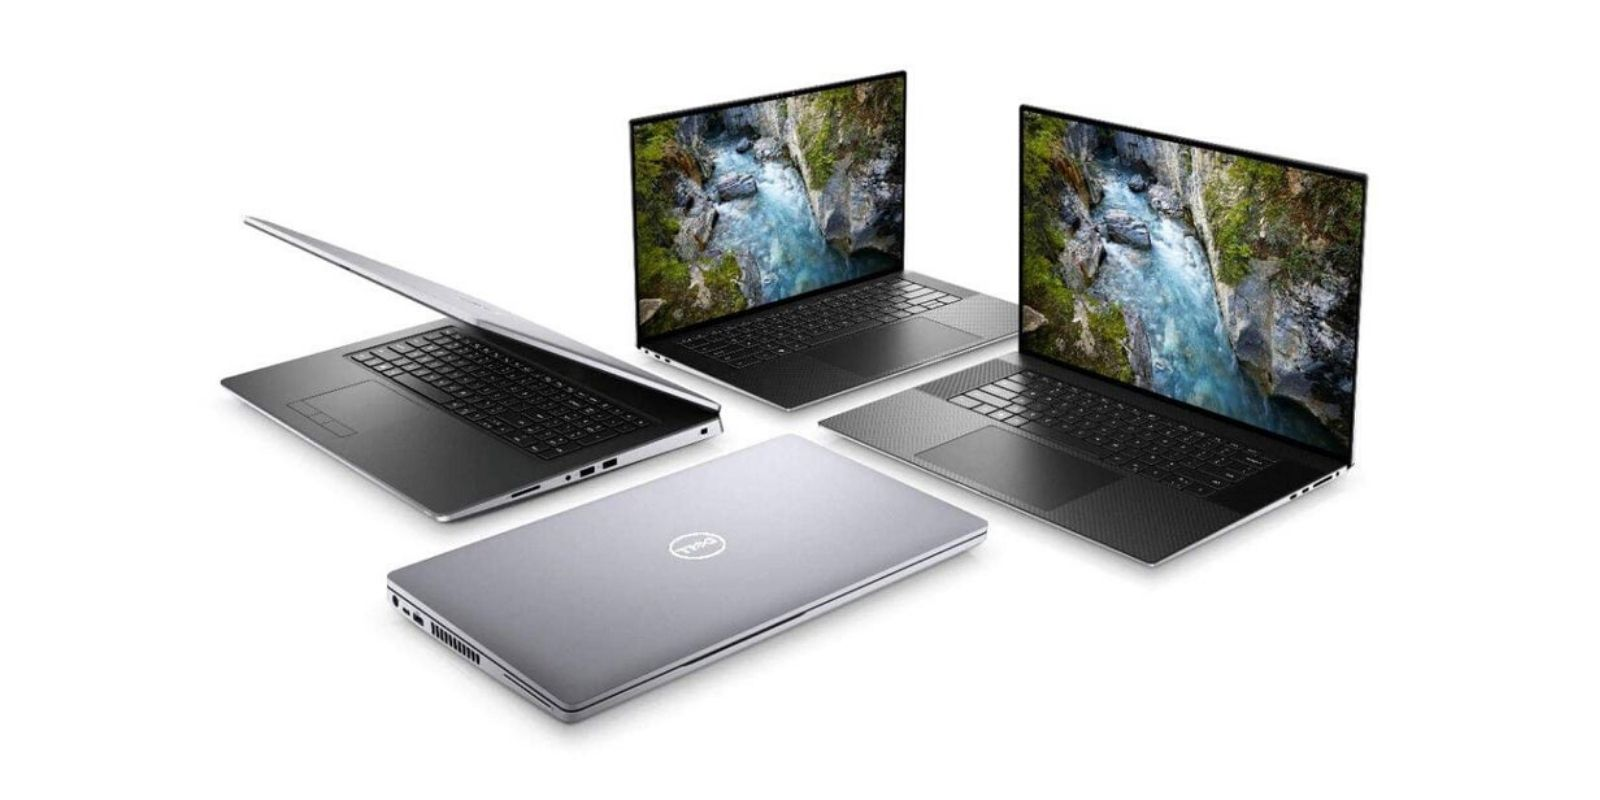 Dell XPS 15 and XPS 17 leaked